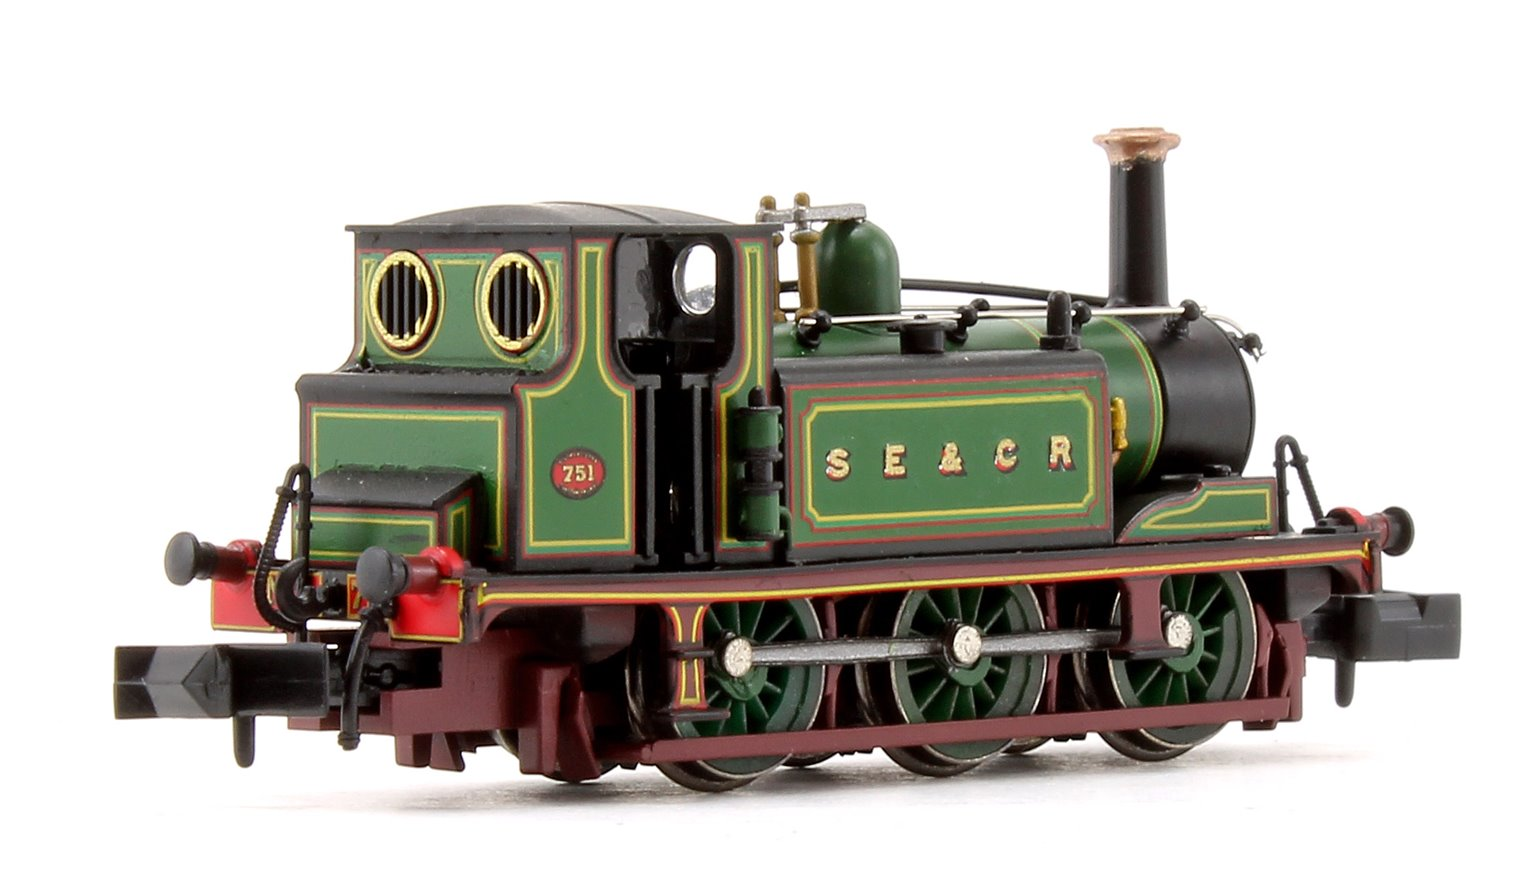 Terrier A1 SECR Green Locomotive No.751